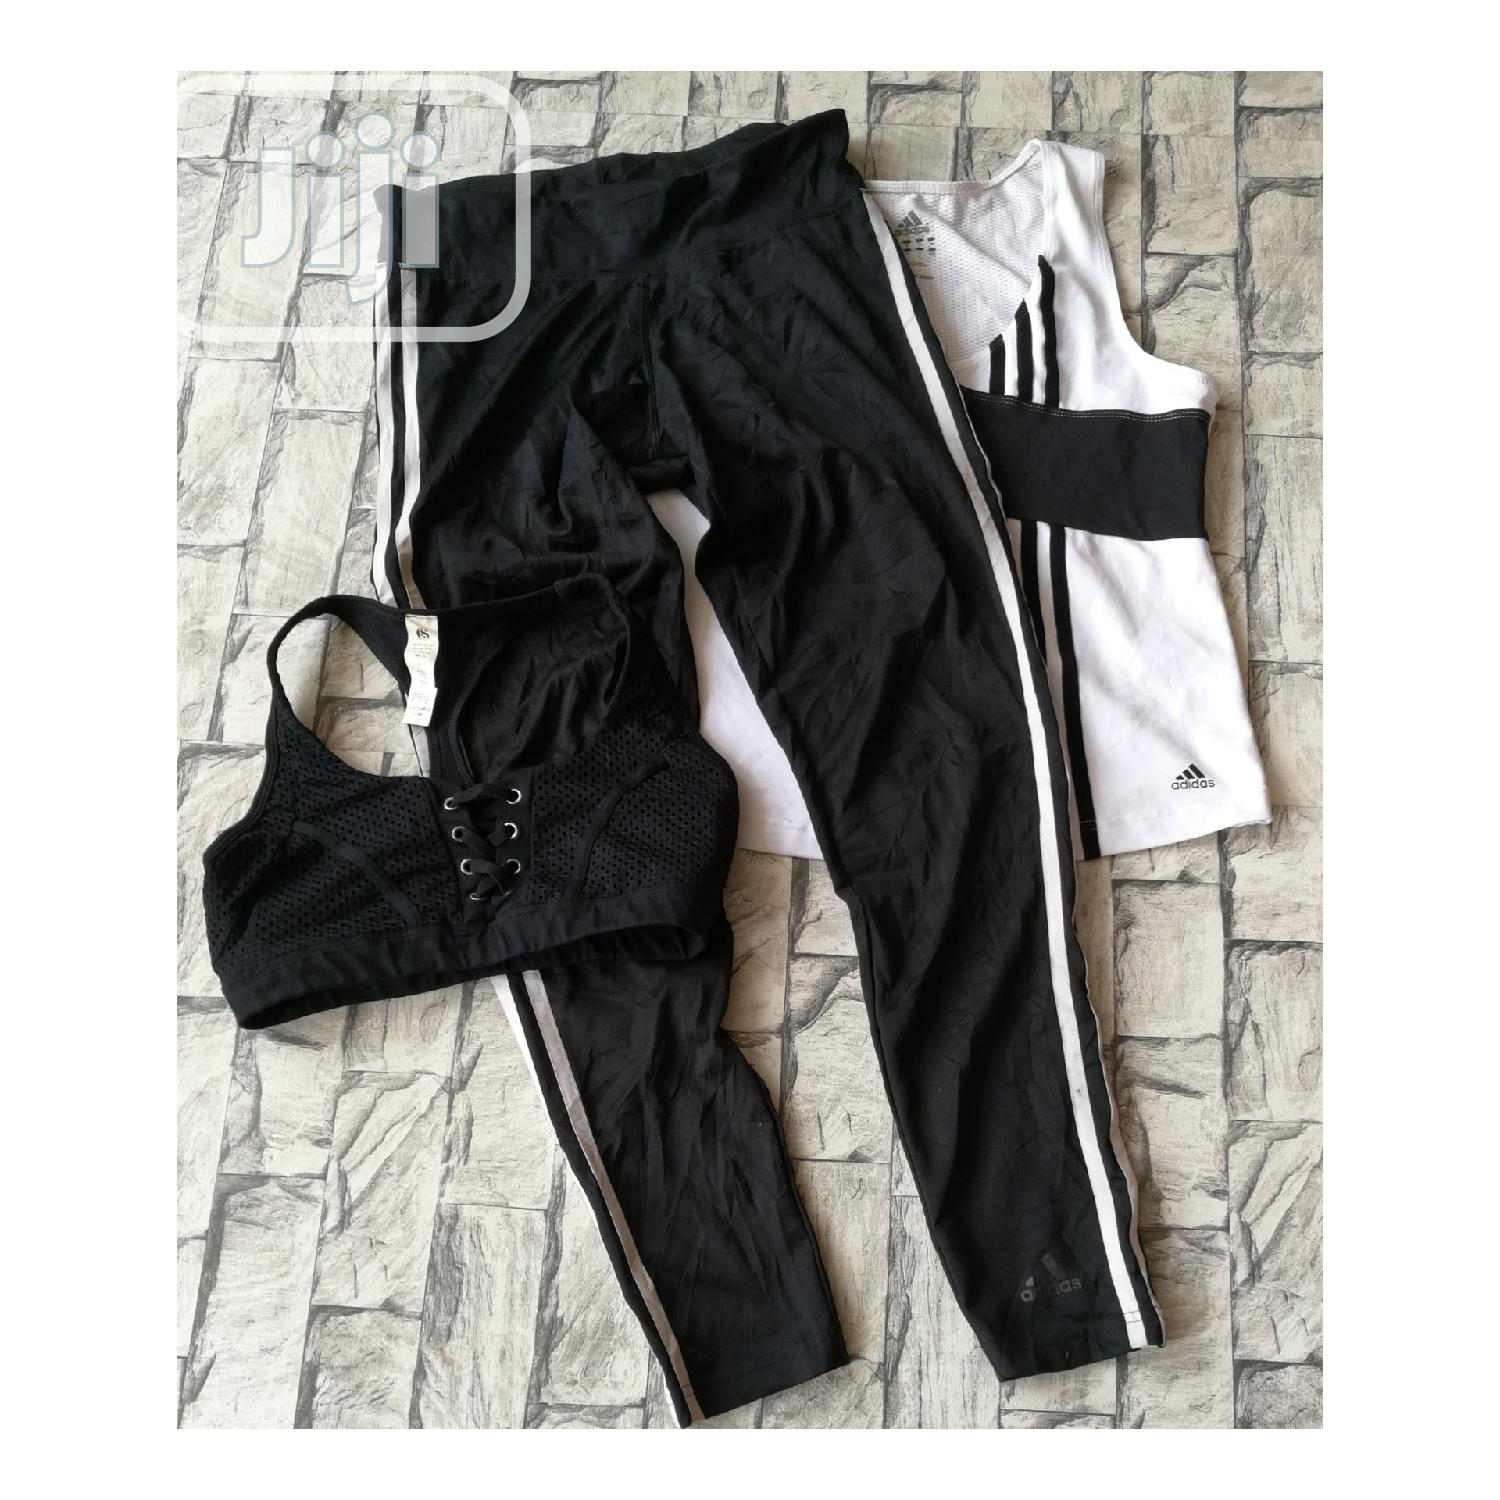 Olivia Charles Fit Gym Wear and Accessories